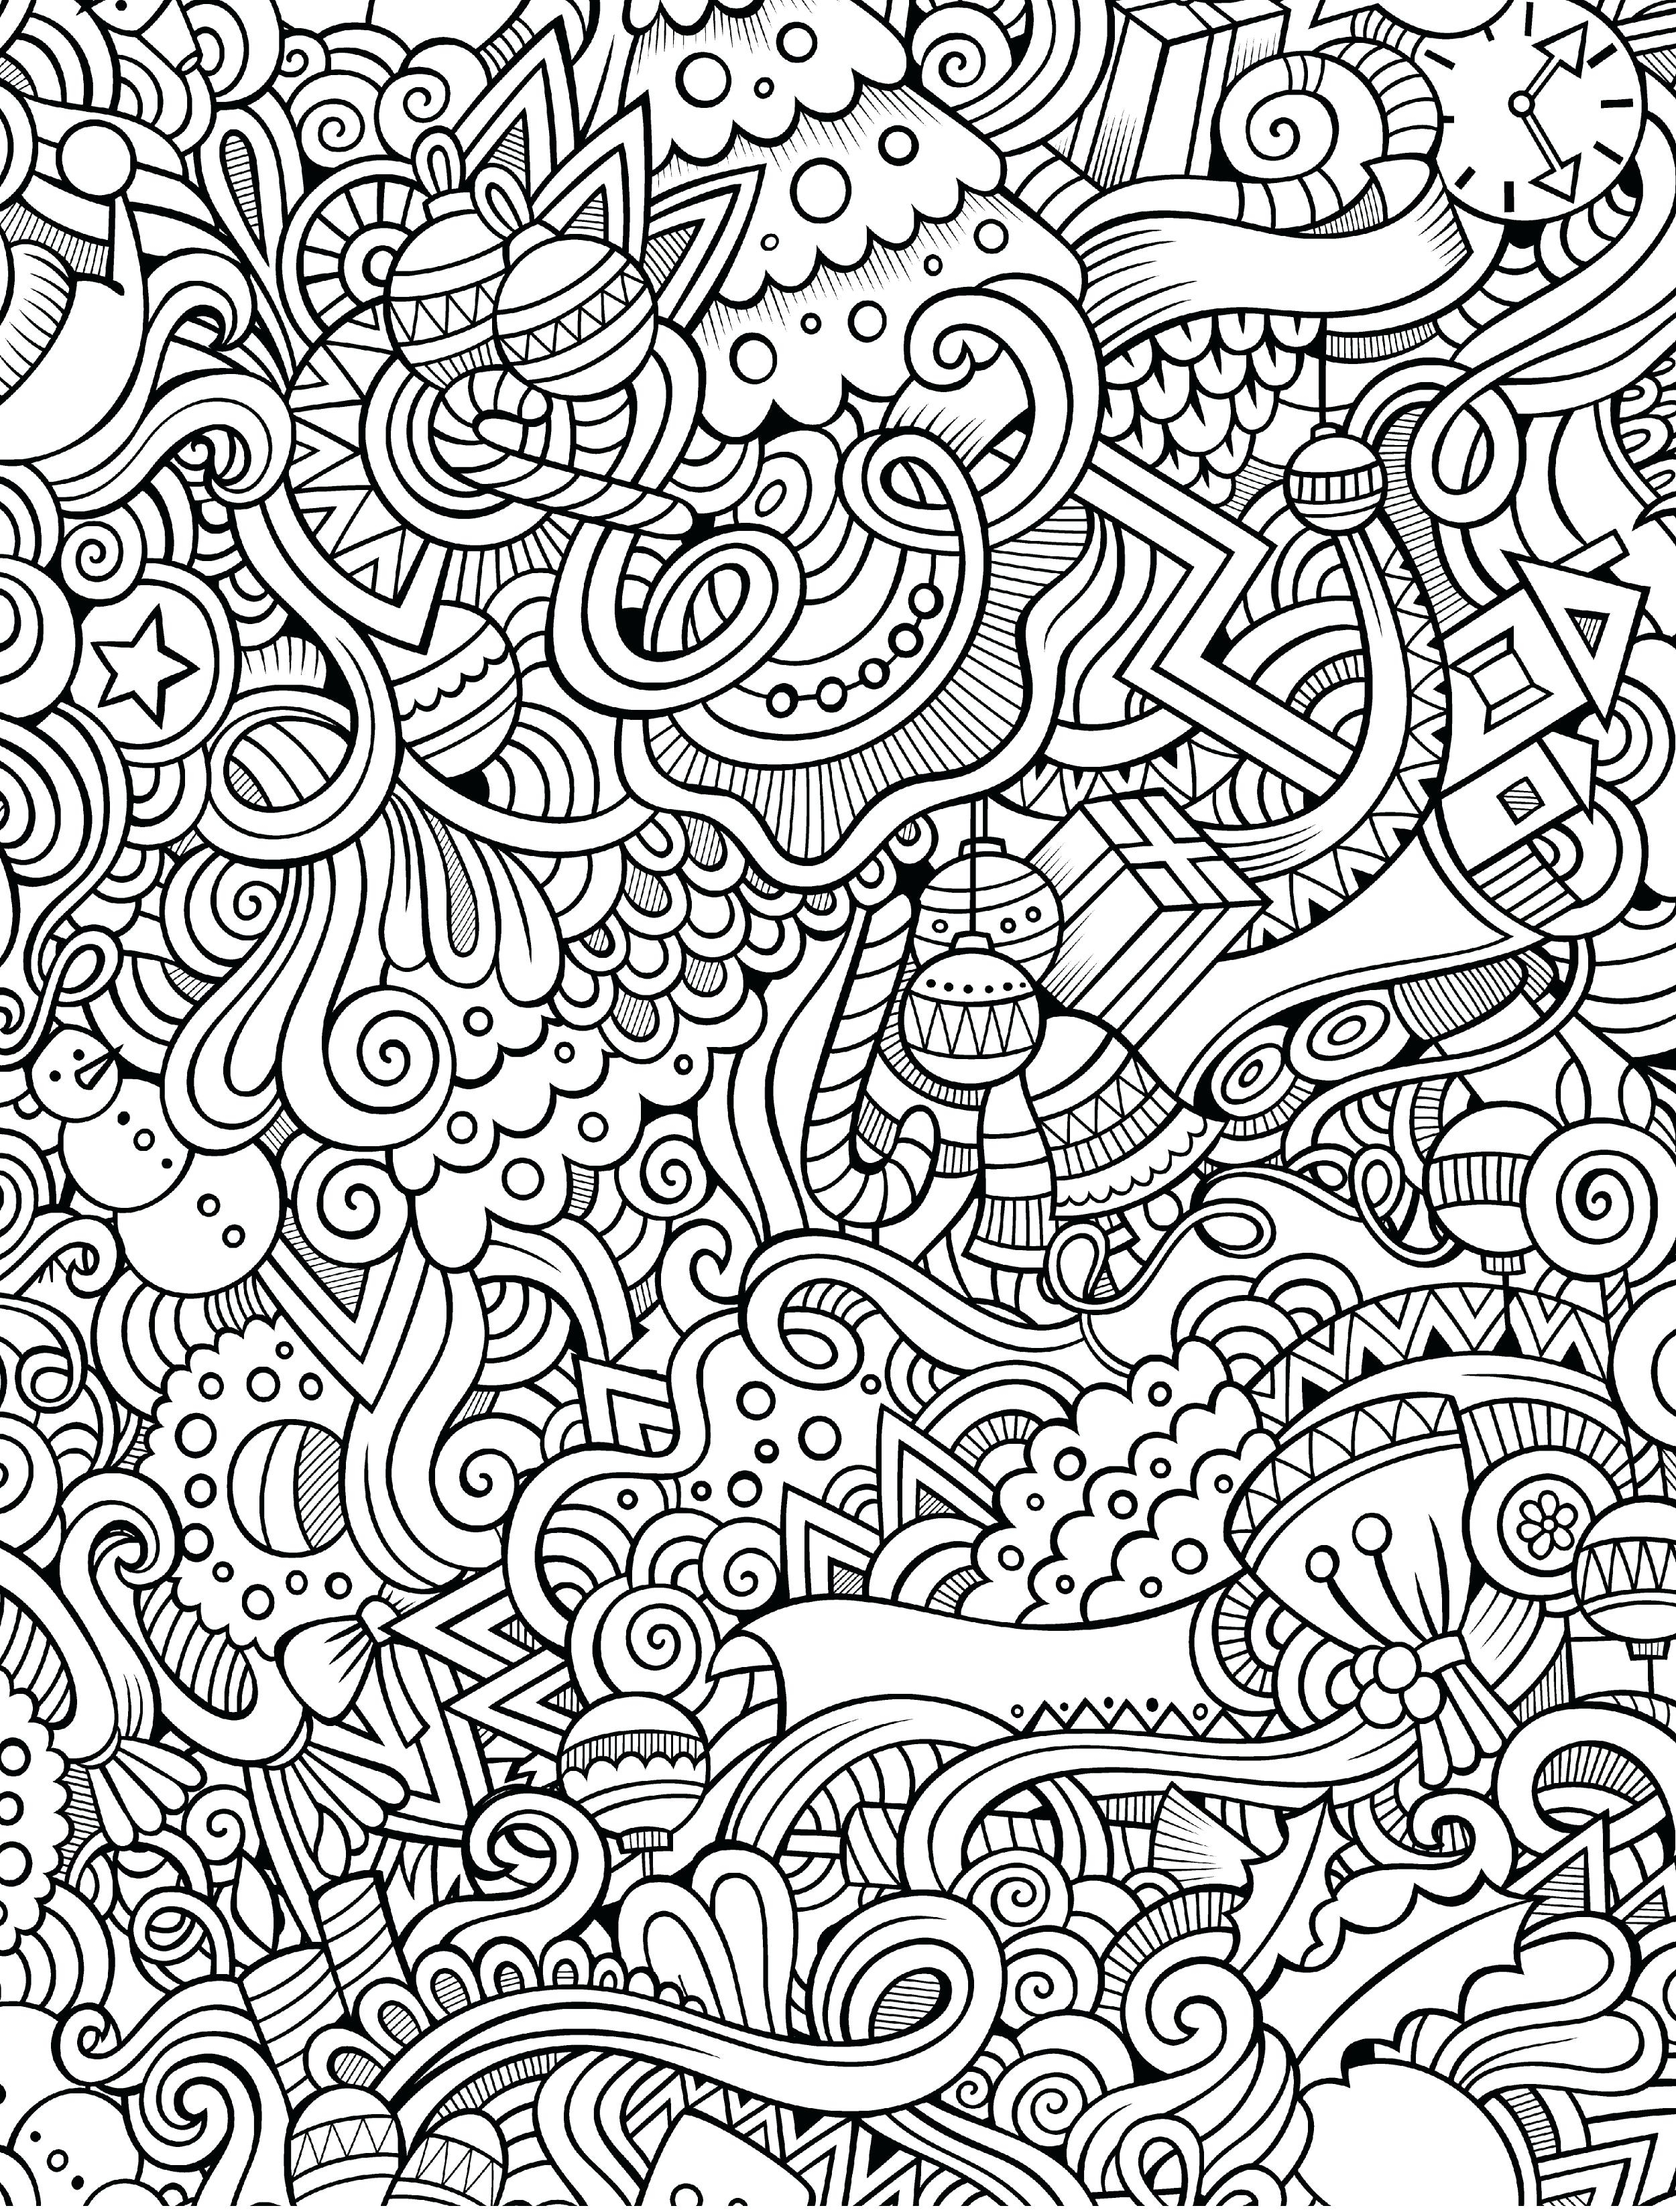 Coloring Pages for Dementia Patients Download   Free ...